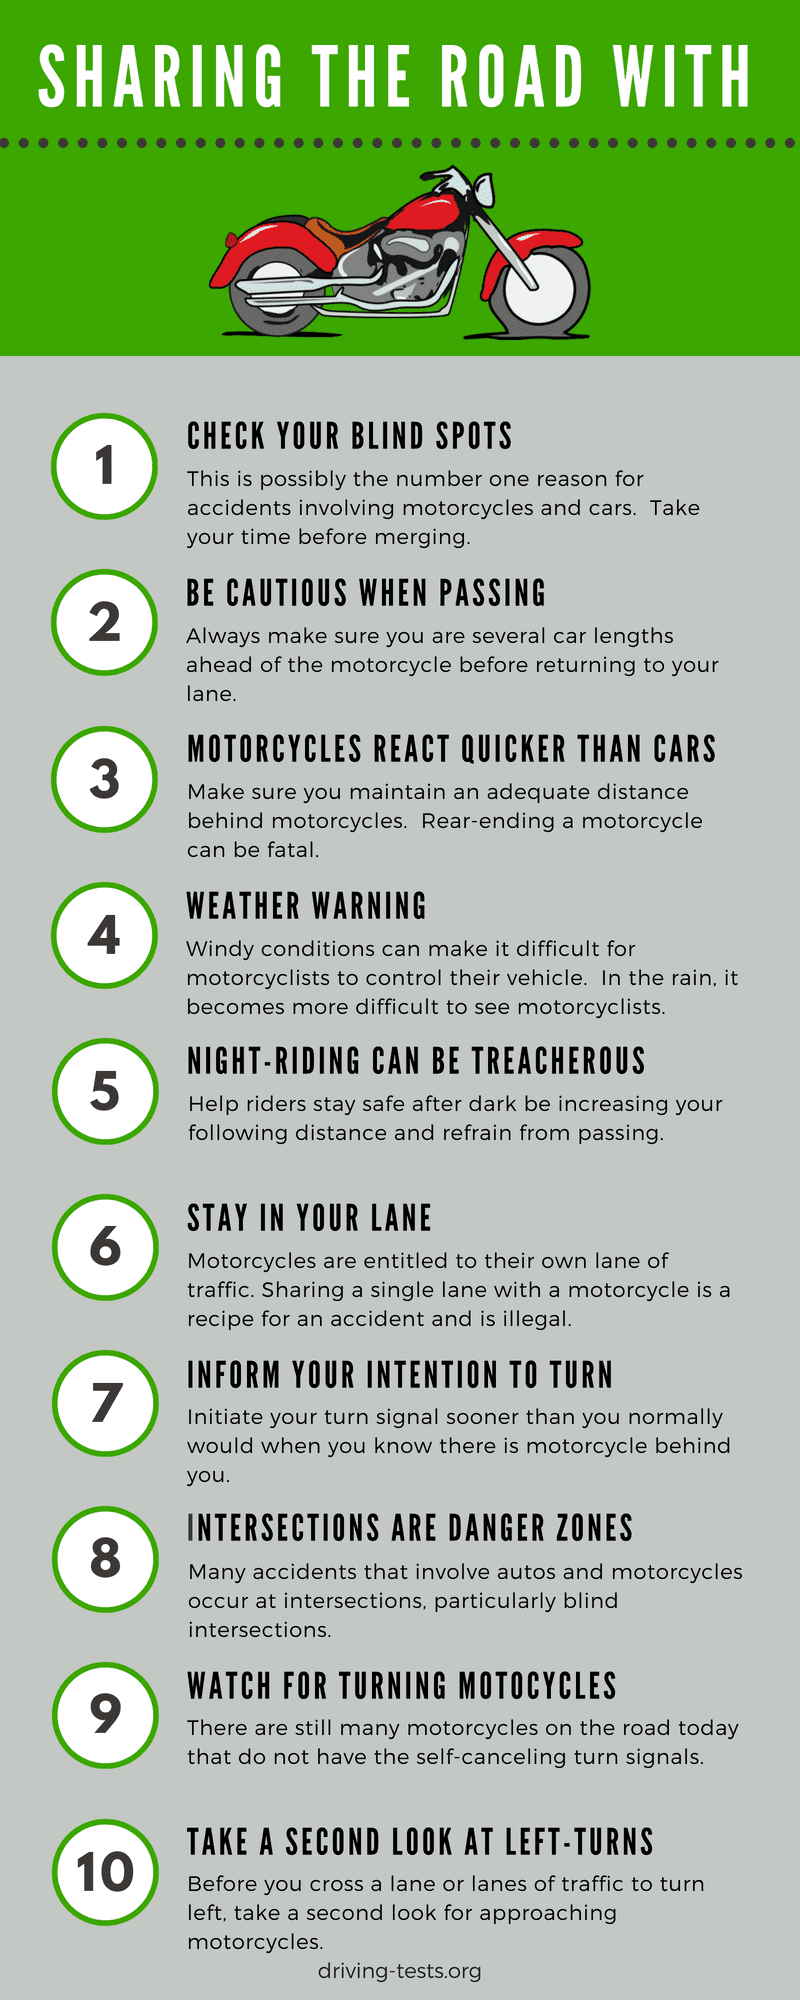 Sharing the road with motorcycle infographic